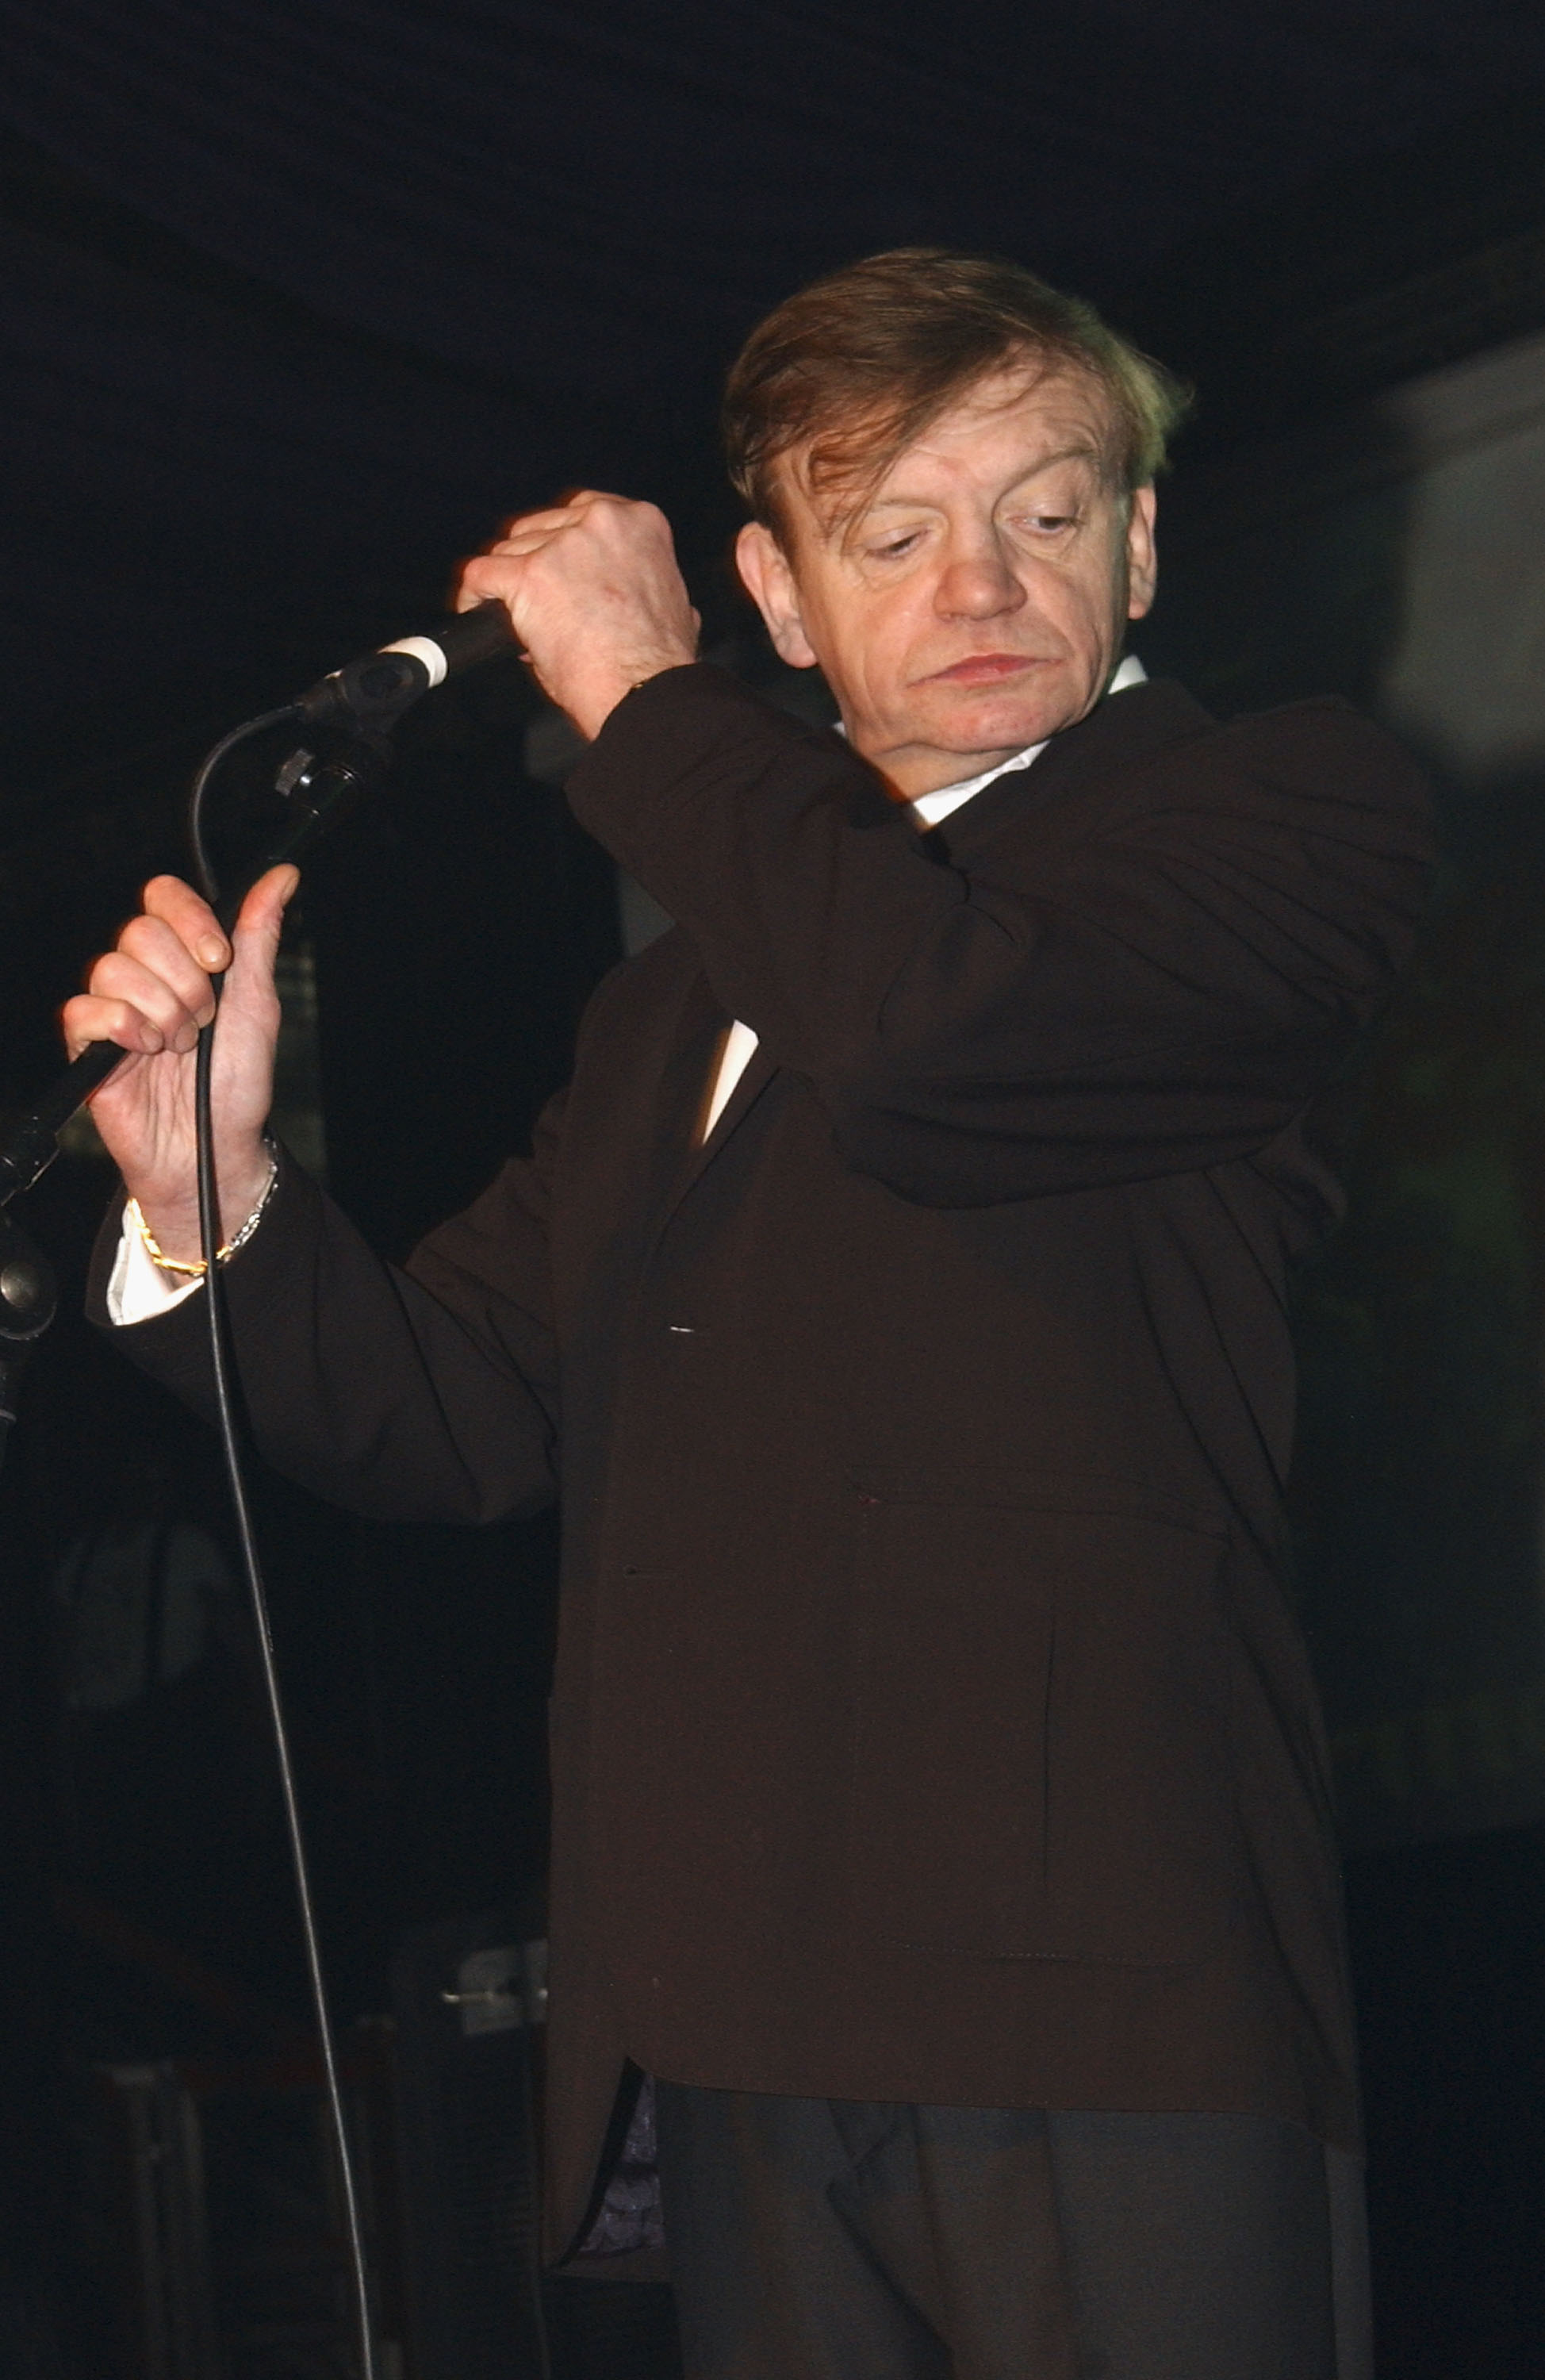 Mark E Smith of The Fall performs at the Hammersmith Palais on April 1, 2007 in London. This was the last scheduled concert at the historic West London venue, immortalised by The Clash song 'White Man In Hammersmith Palais', as it closes to make way for a restaurant and office block.